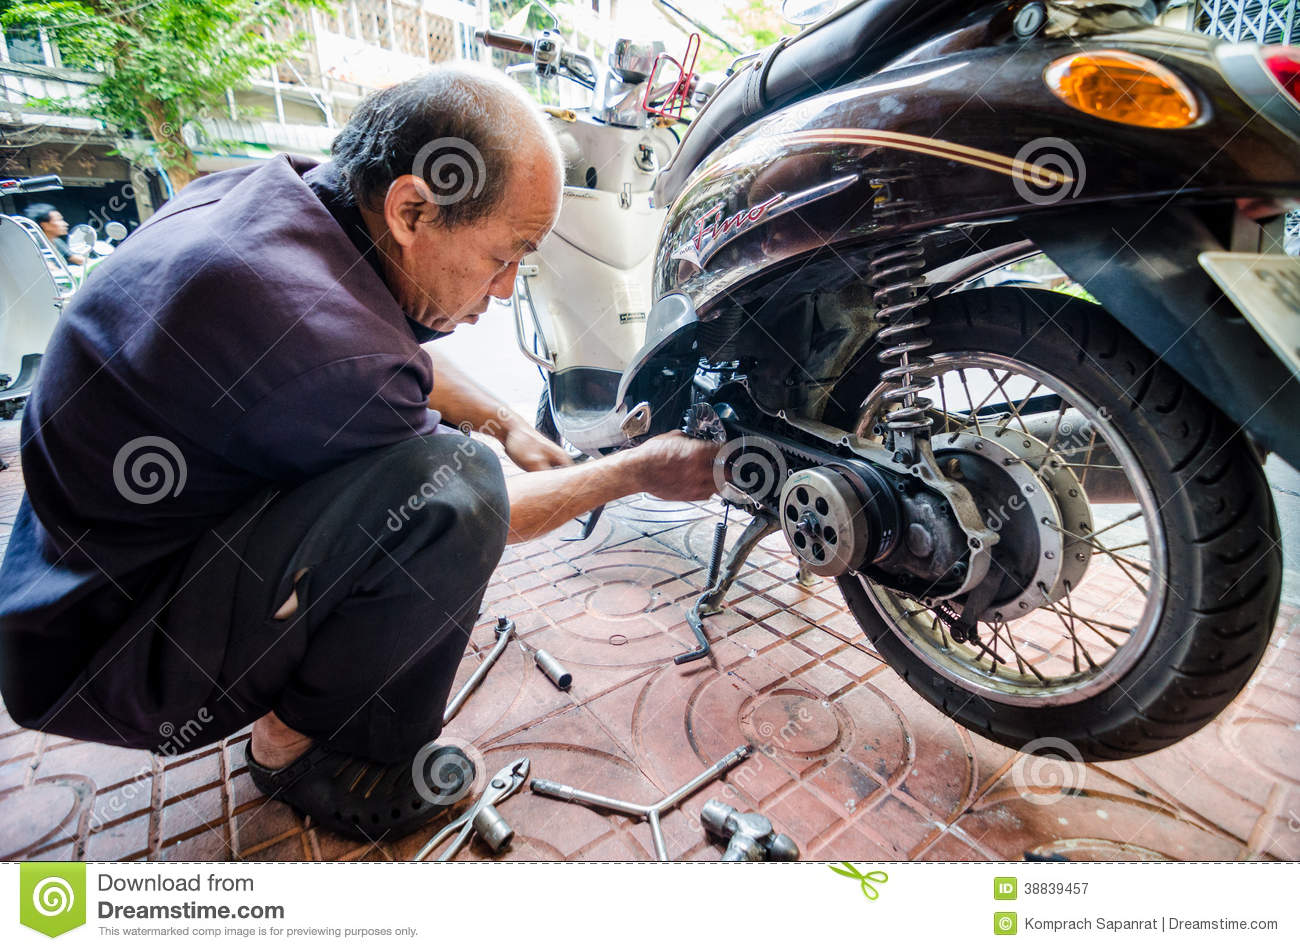 thailand man mechanic motorcycle editorial photo